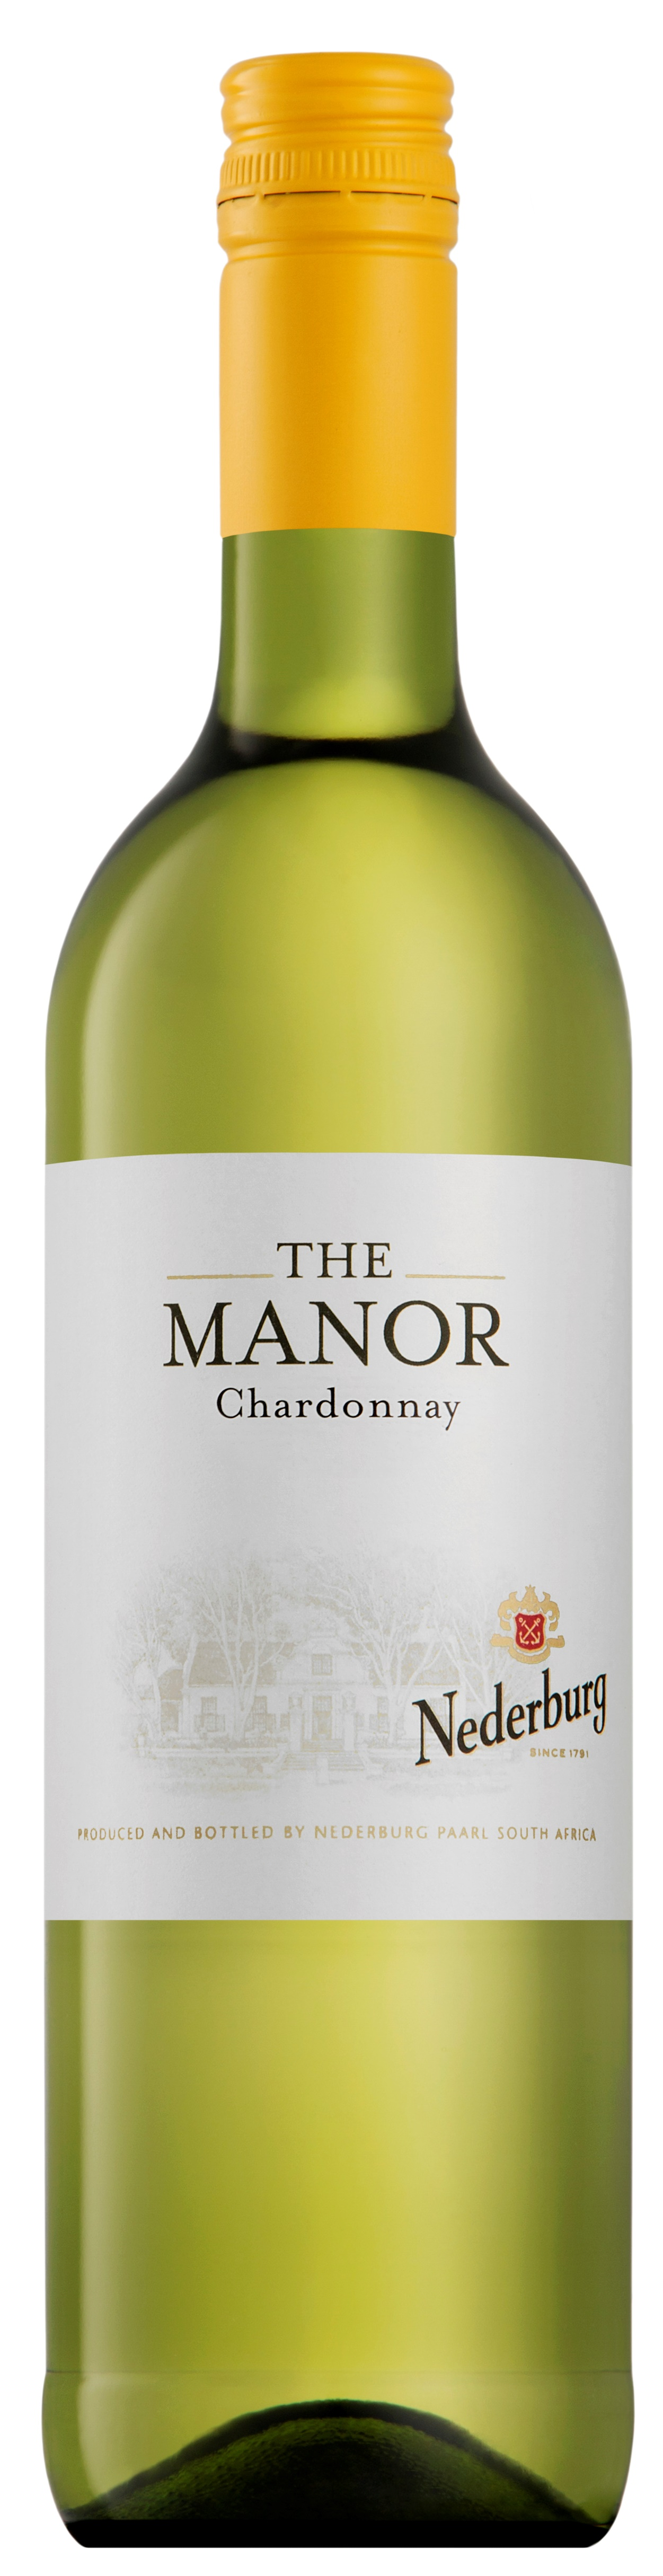 Nederburg The Manor Chardonnay